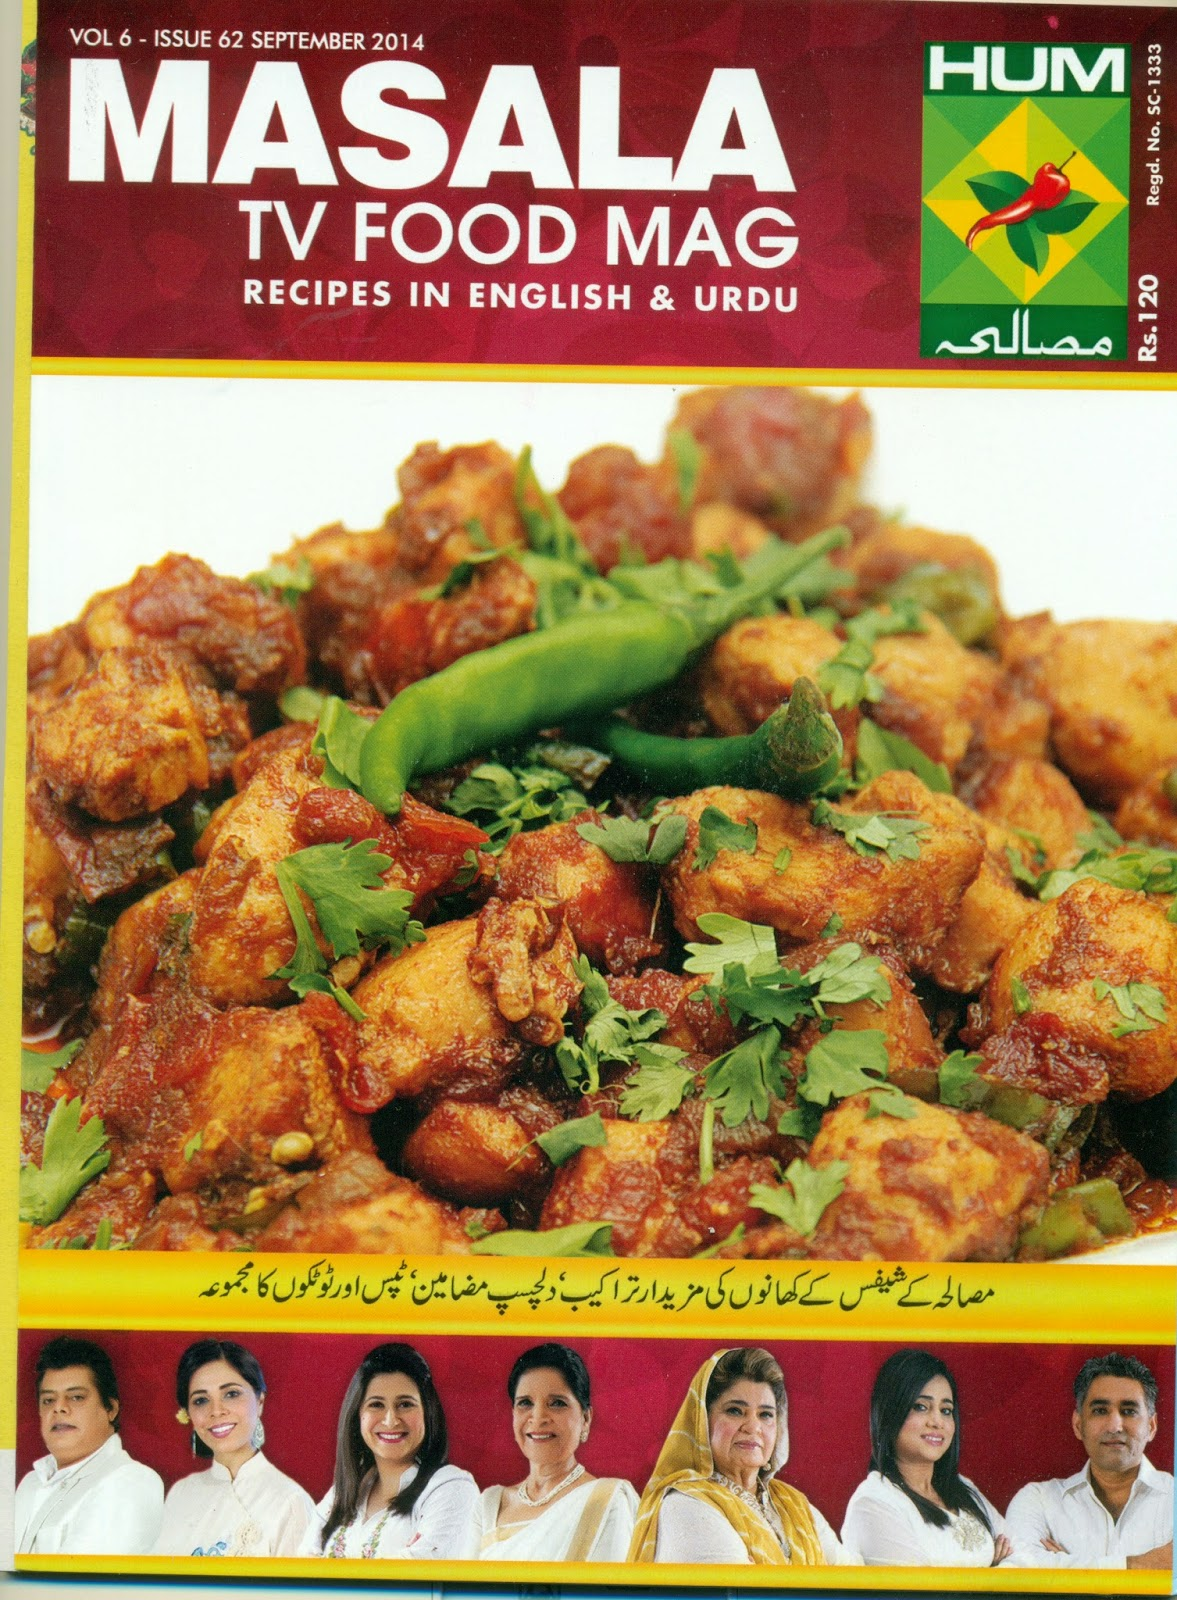 scan0012 - Masala Tv Food Mag September 2014